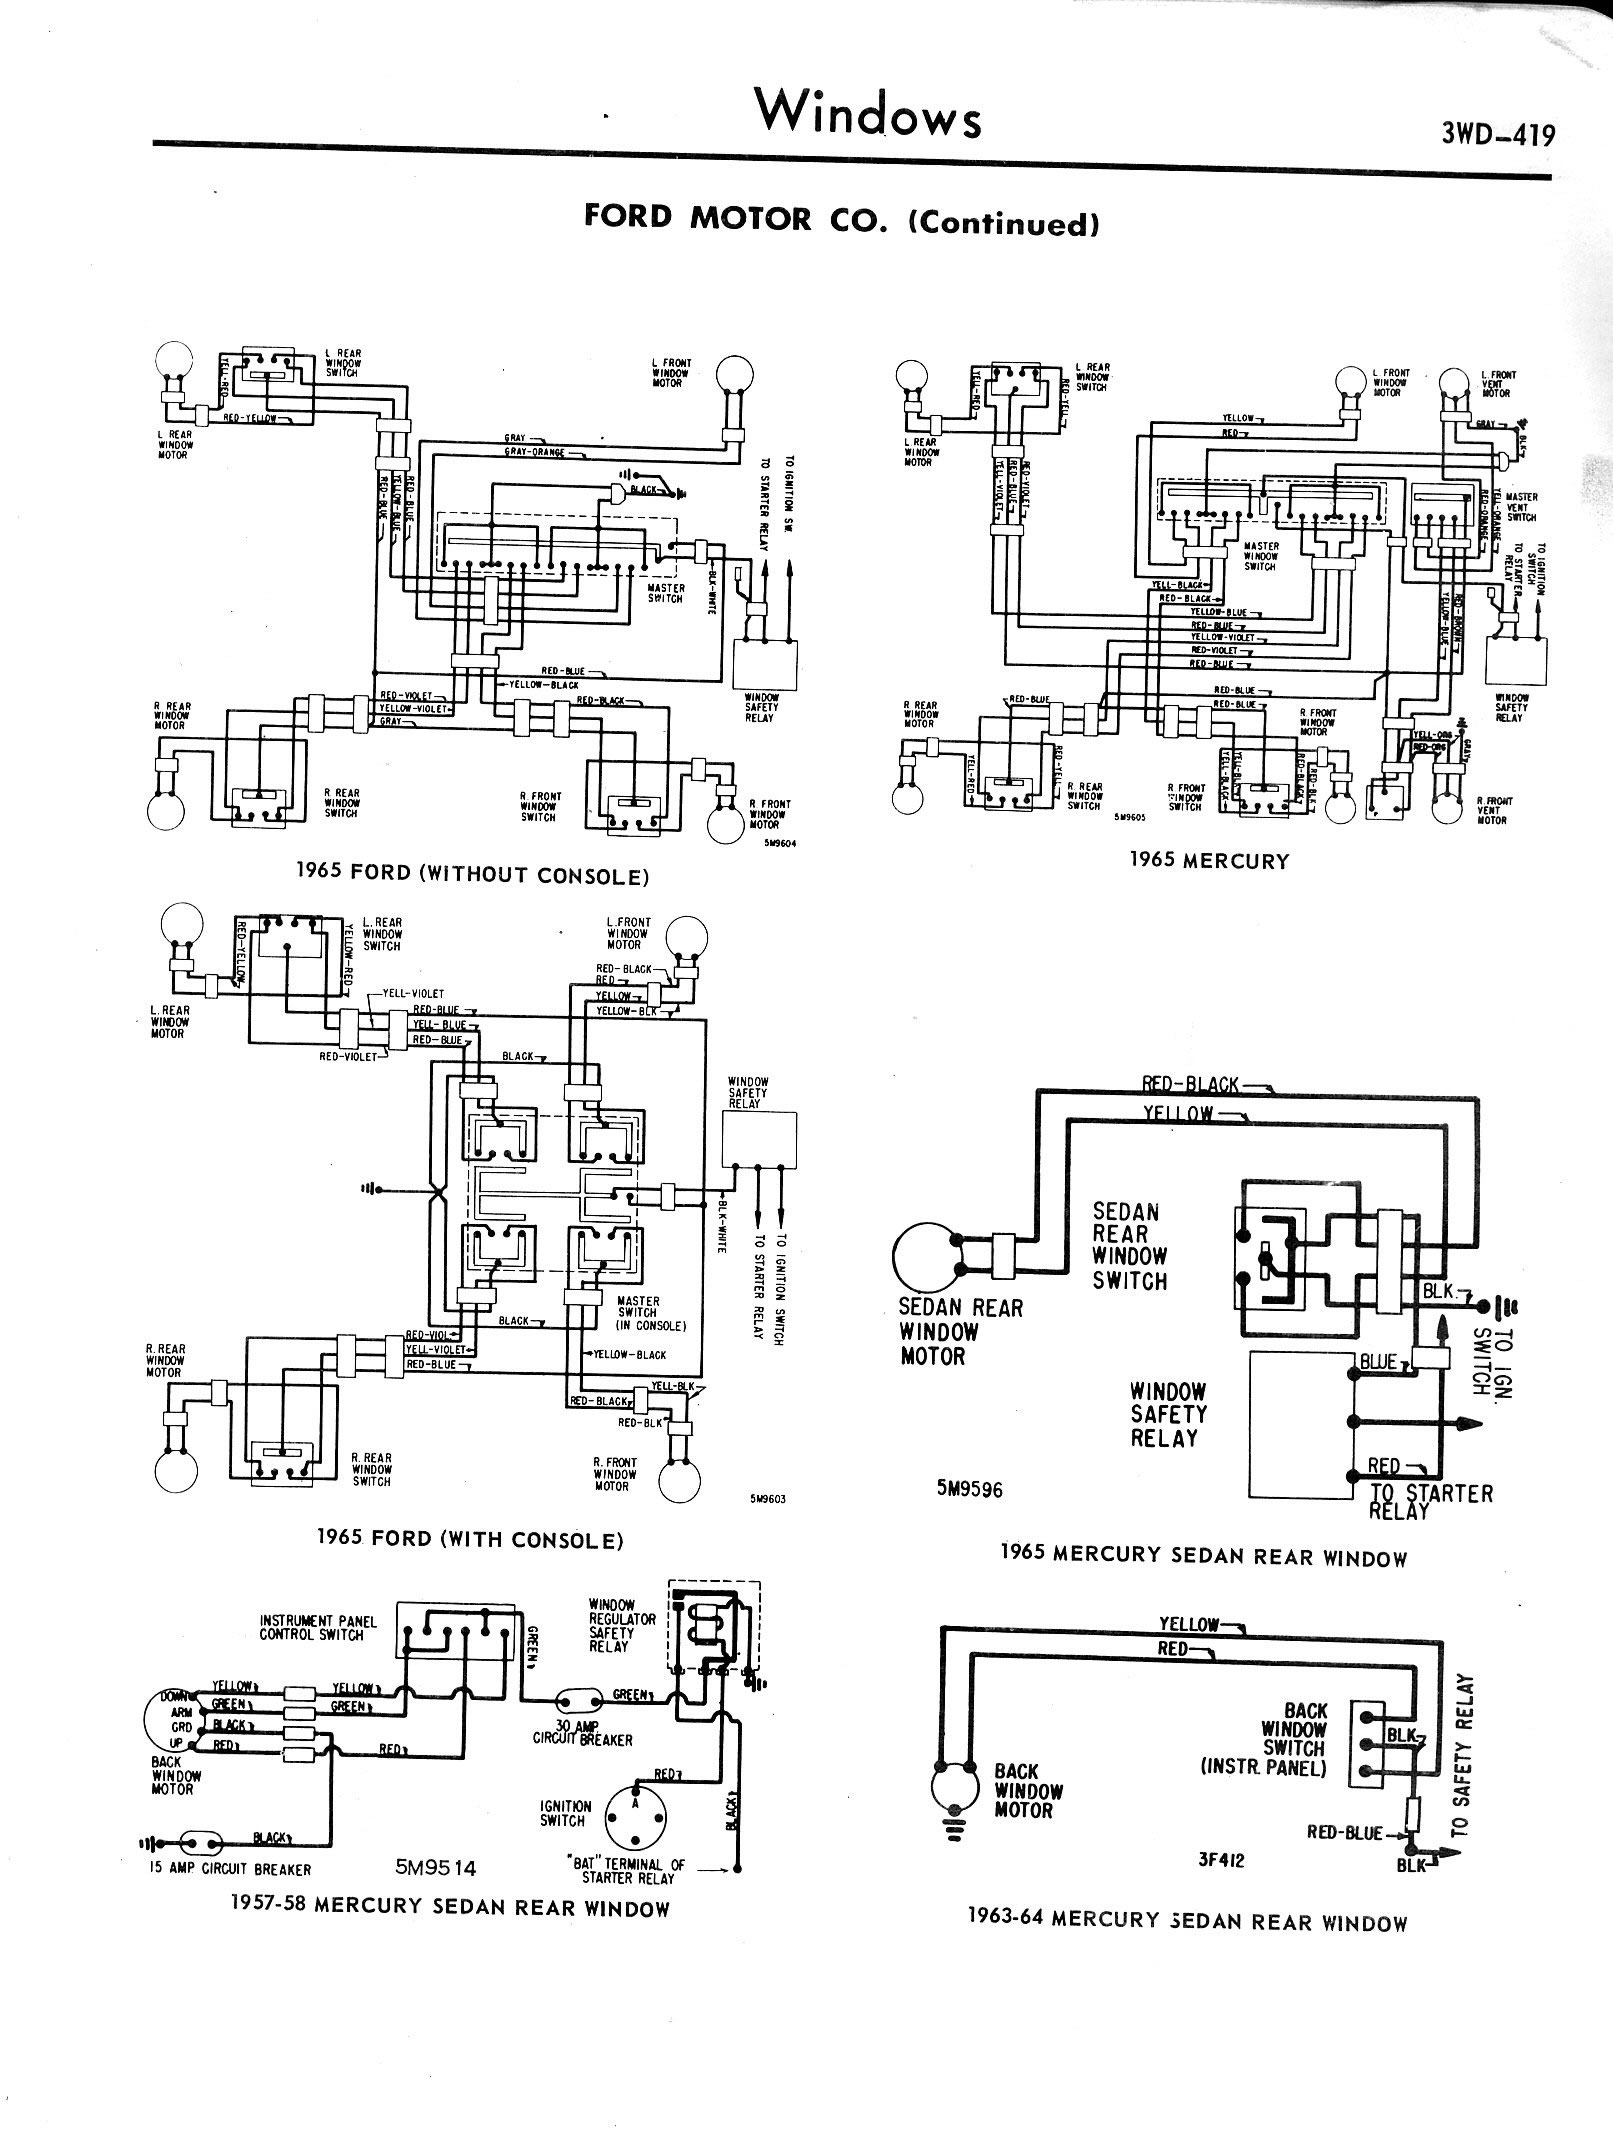 f250 6 4l fuse box diagram wiring library 2006 F250 Fuse Box Diagram 3wd 419 mercury breezeway rear window troule ford muscle forums ford 1963 mercury monterey fuse box